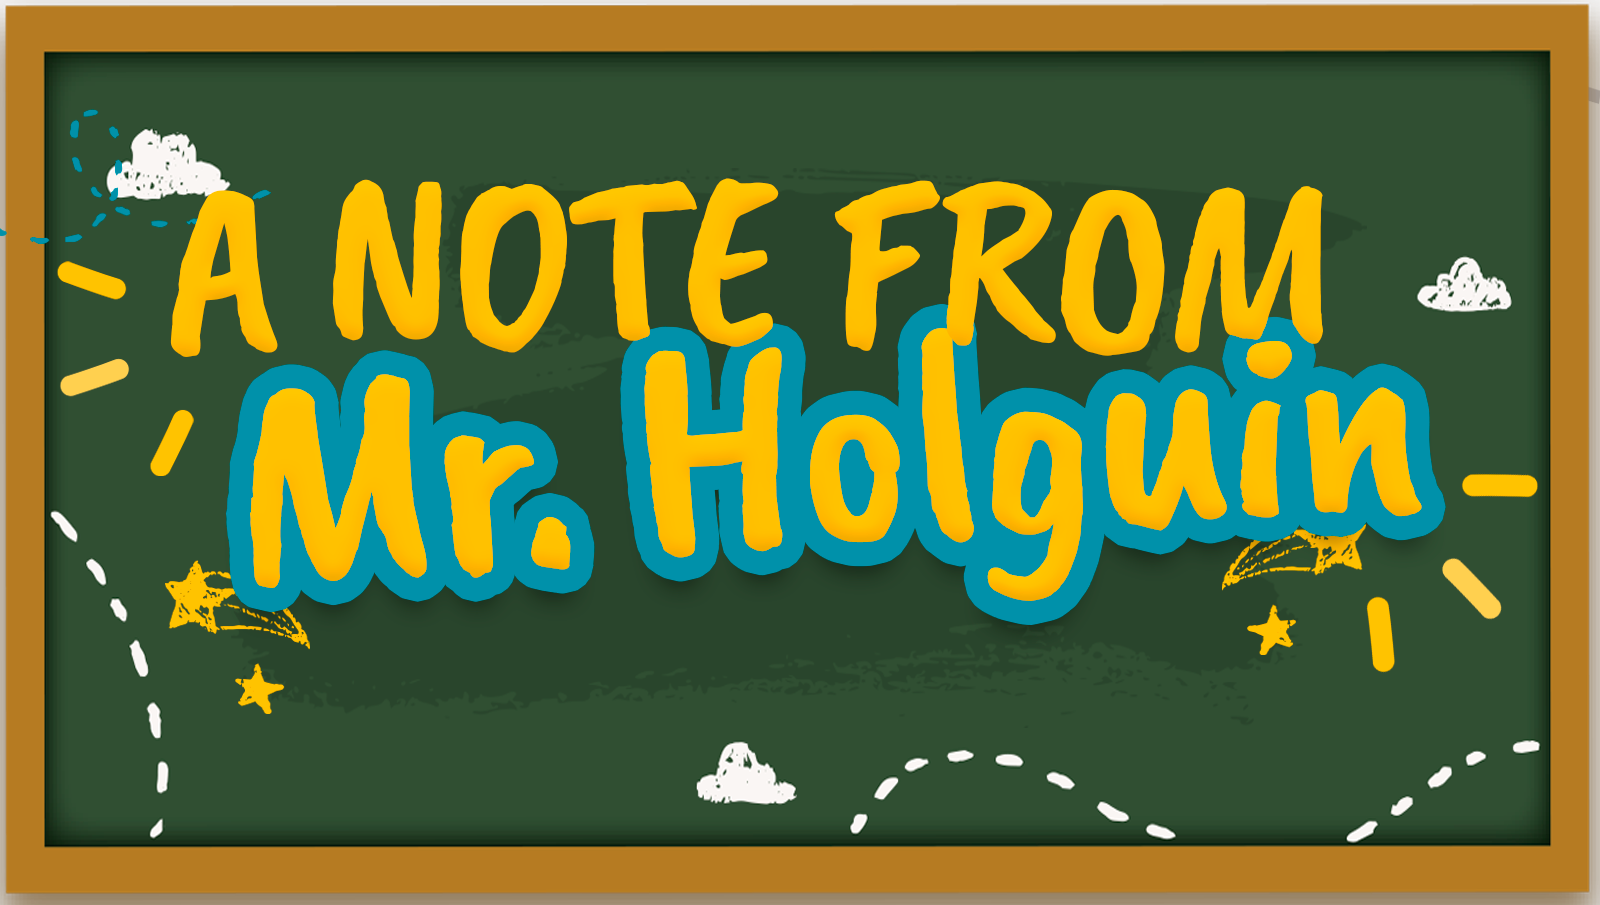 A note from Mr. Holguin